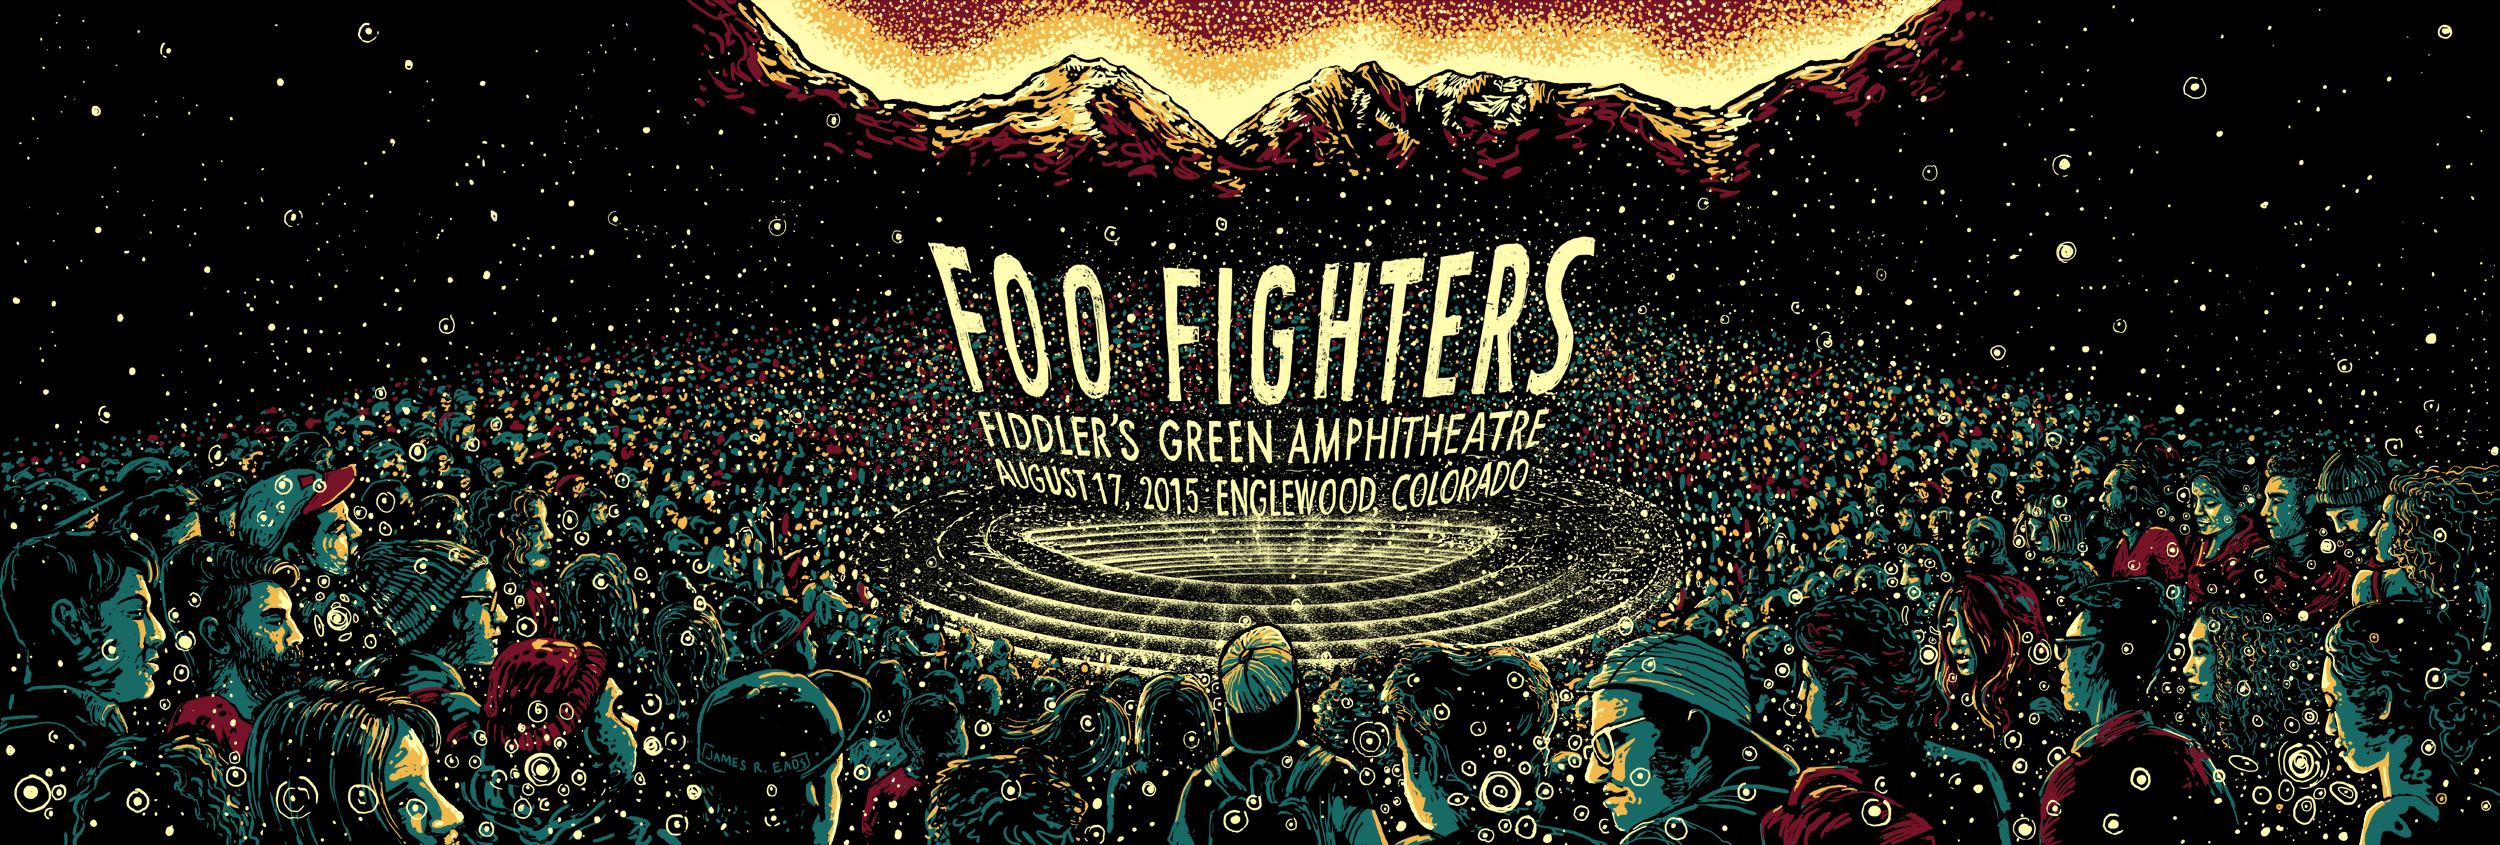 """Foo Fighters - Denver, CO 2015"" by James R Eads.  12"" x 36"" 4-color Screenprint.  AP edition of 75 S/N.  $60"